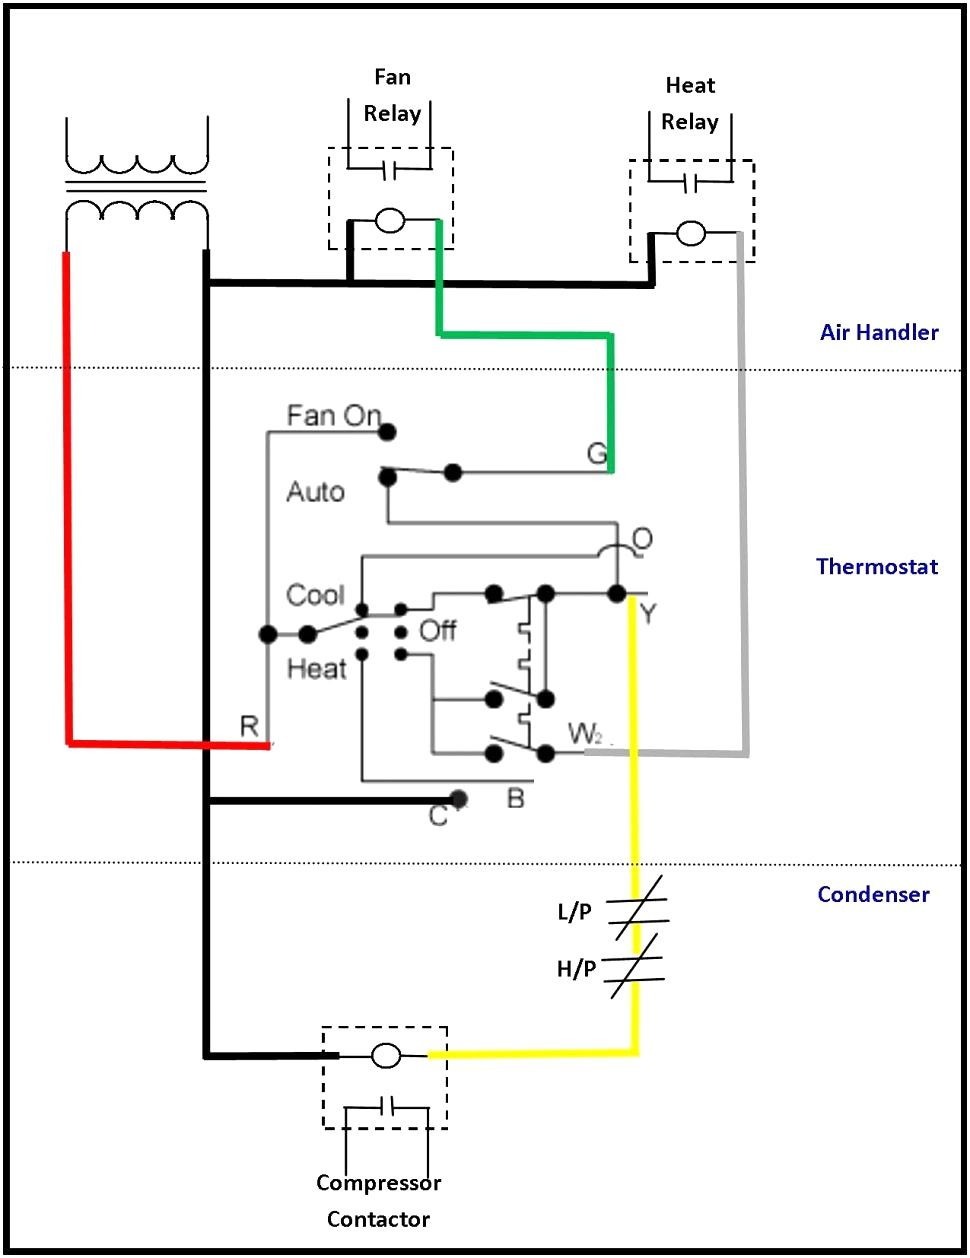 5 Pin Bosch Relay Wiring Diagram - fitfathers.me | 12 V ... Ac Wiring Relay on